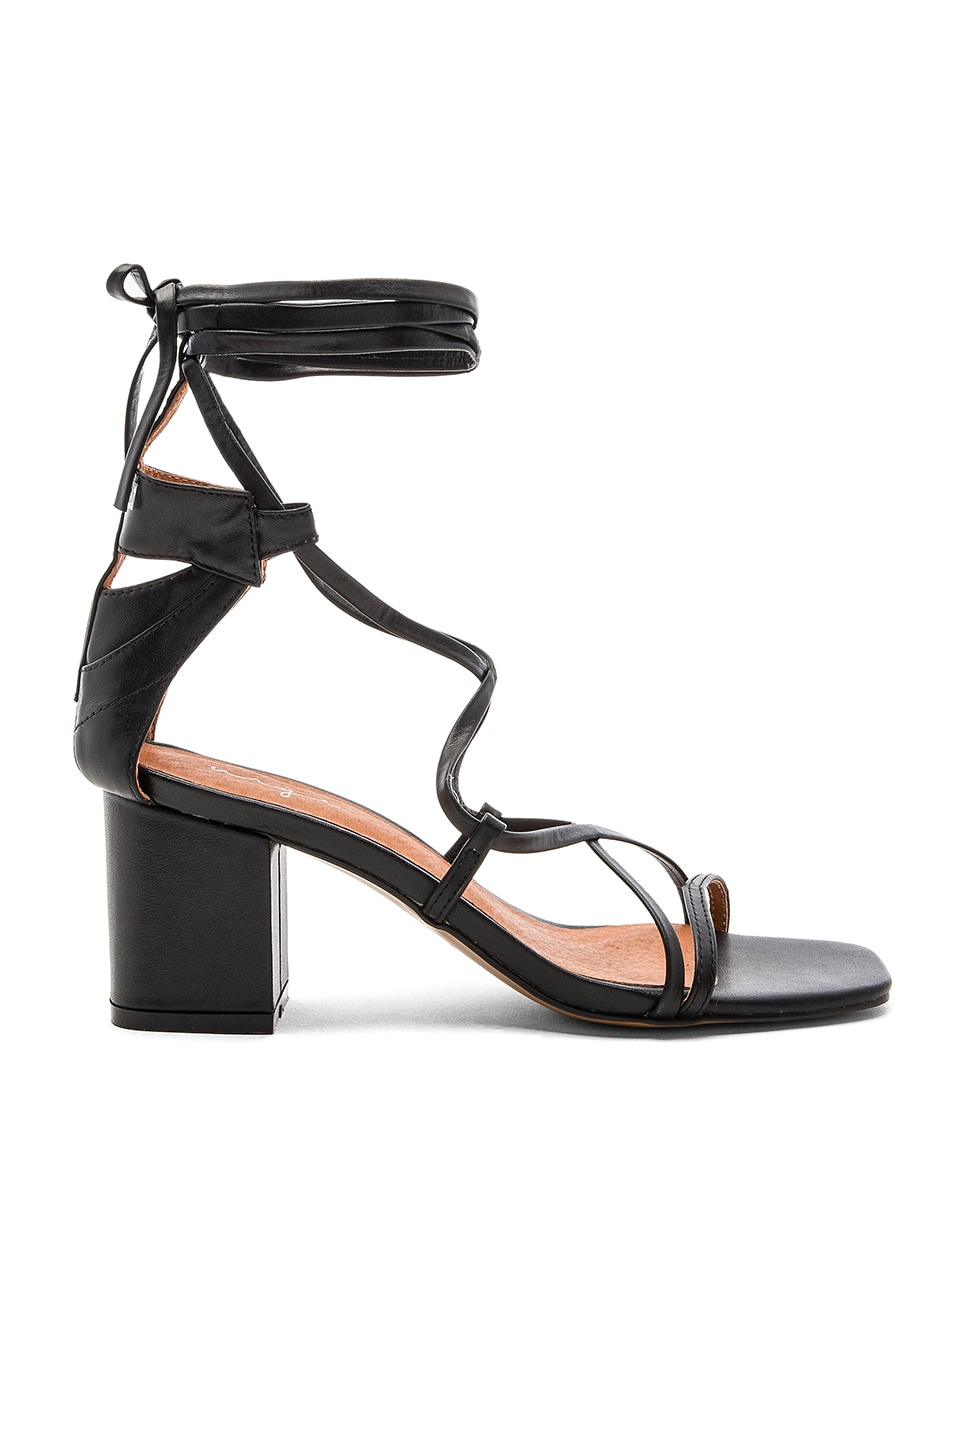 Urge Jessie Heels in Black Leather